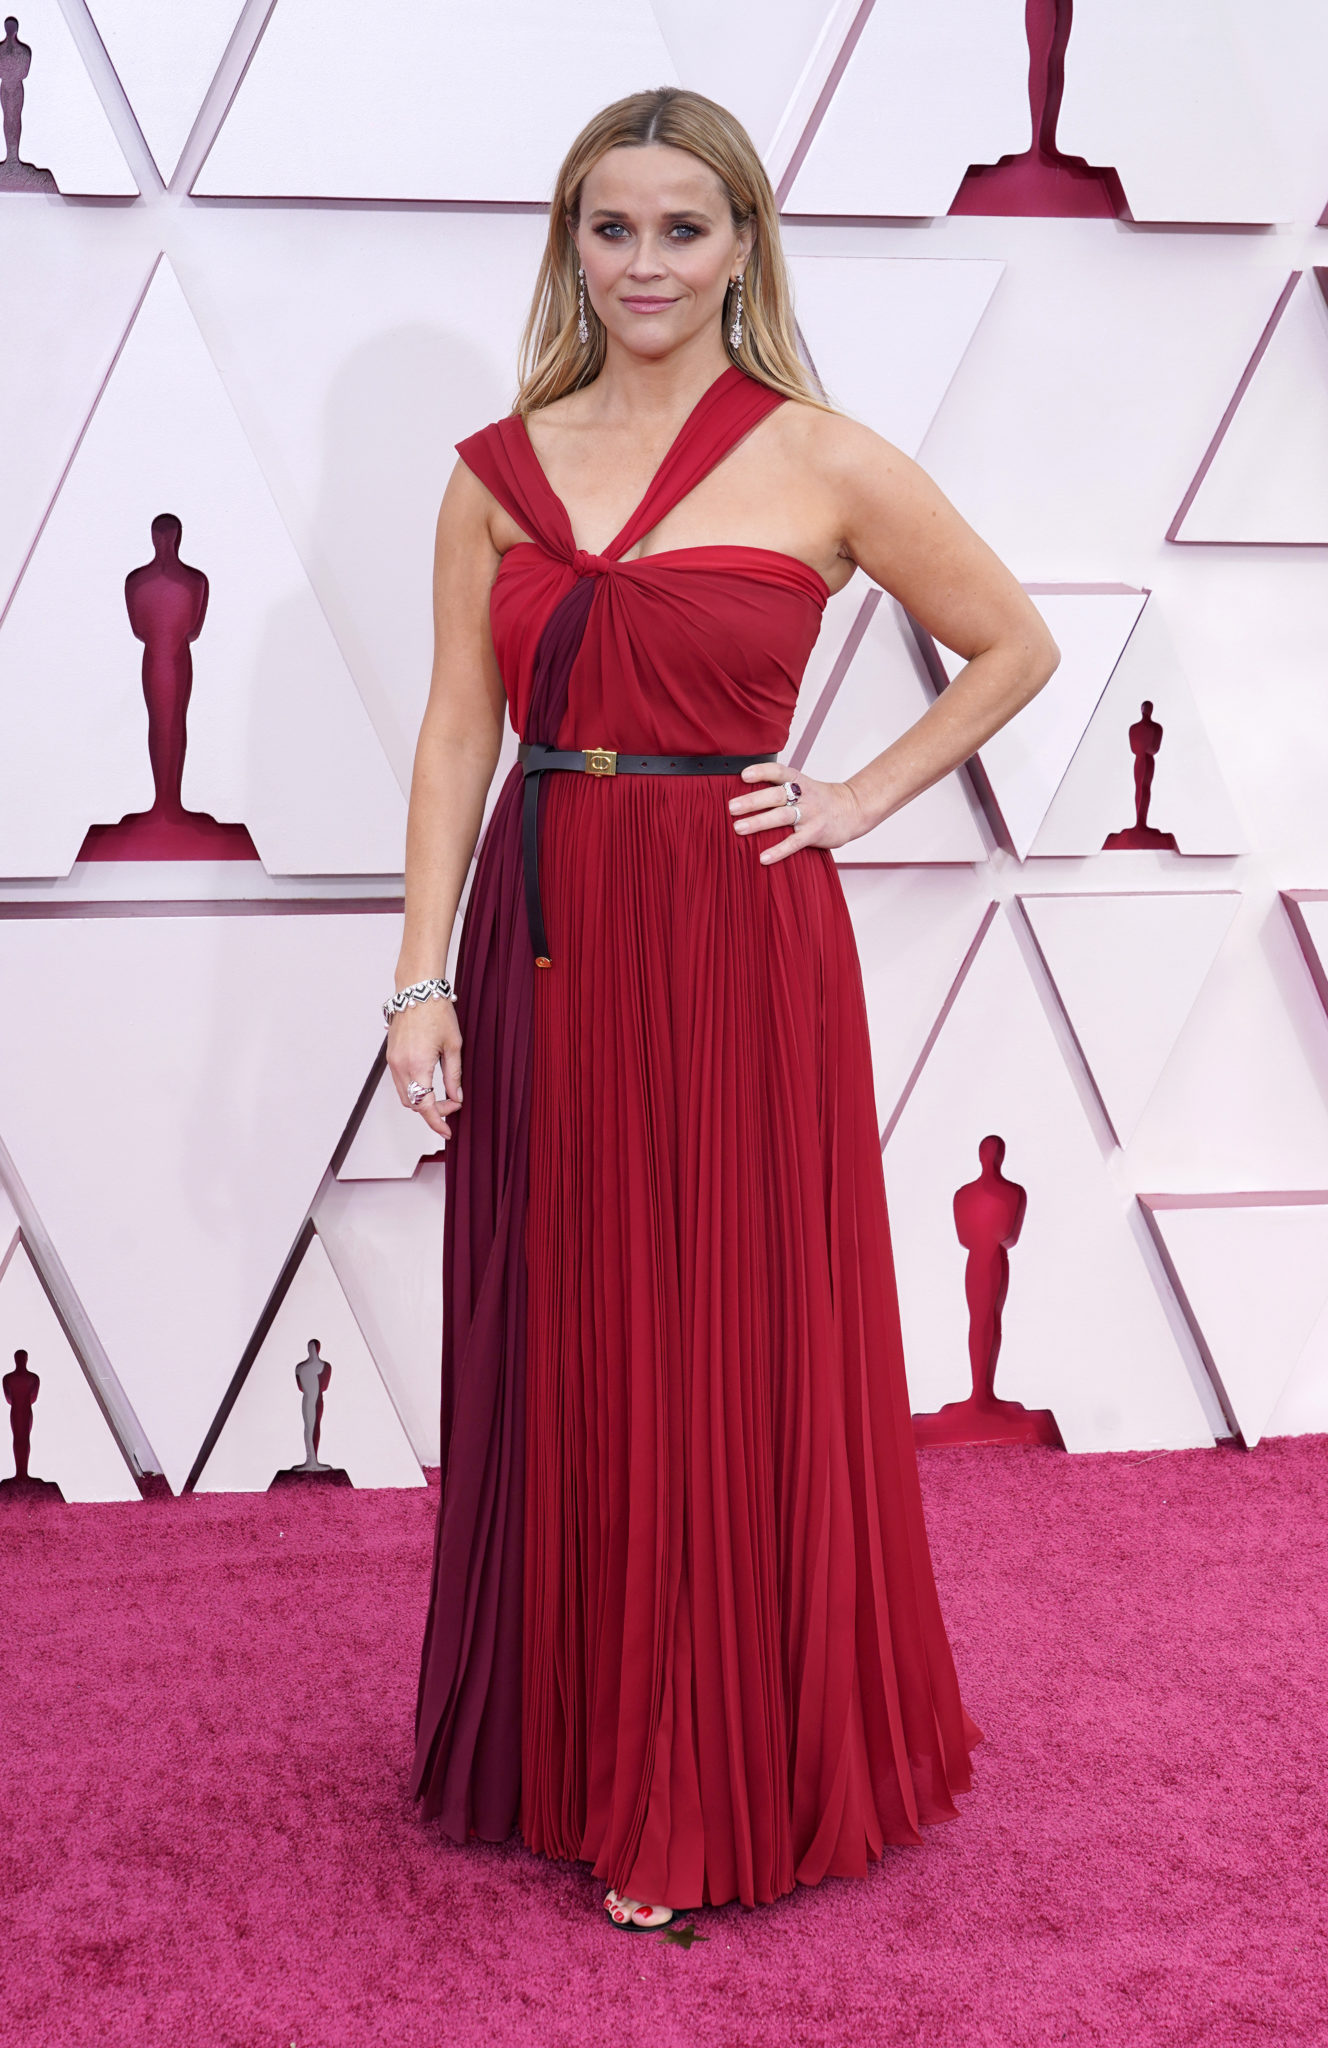 Reese Witherspoon at the 93rd Oscars